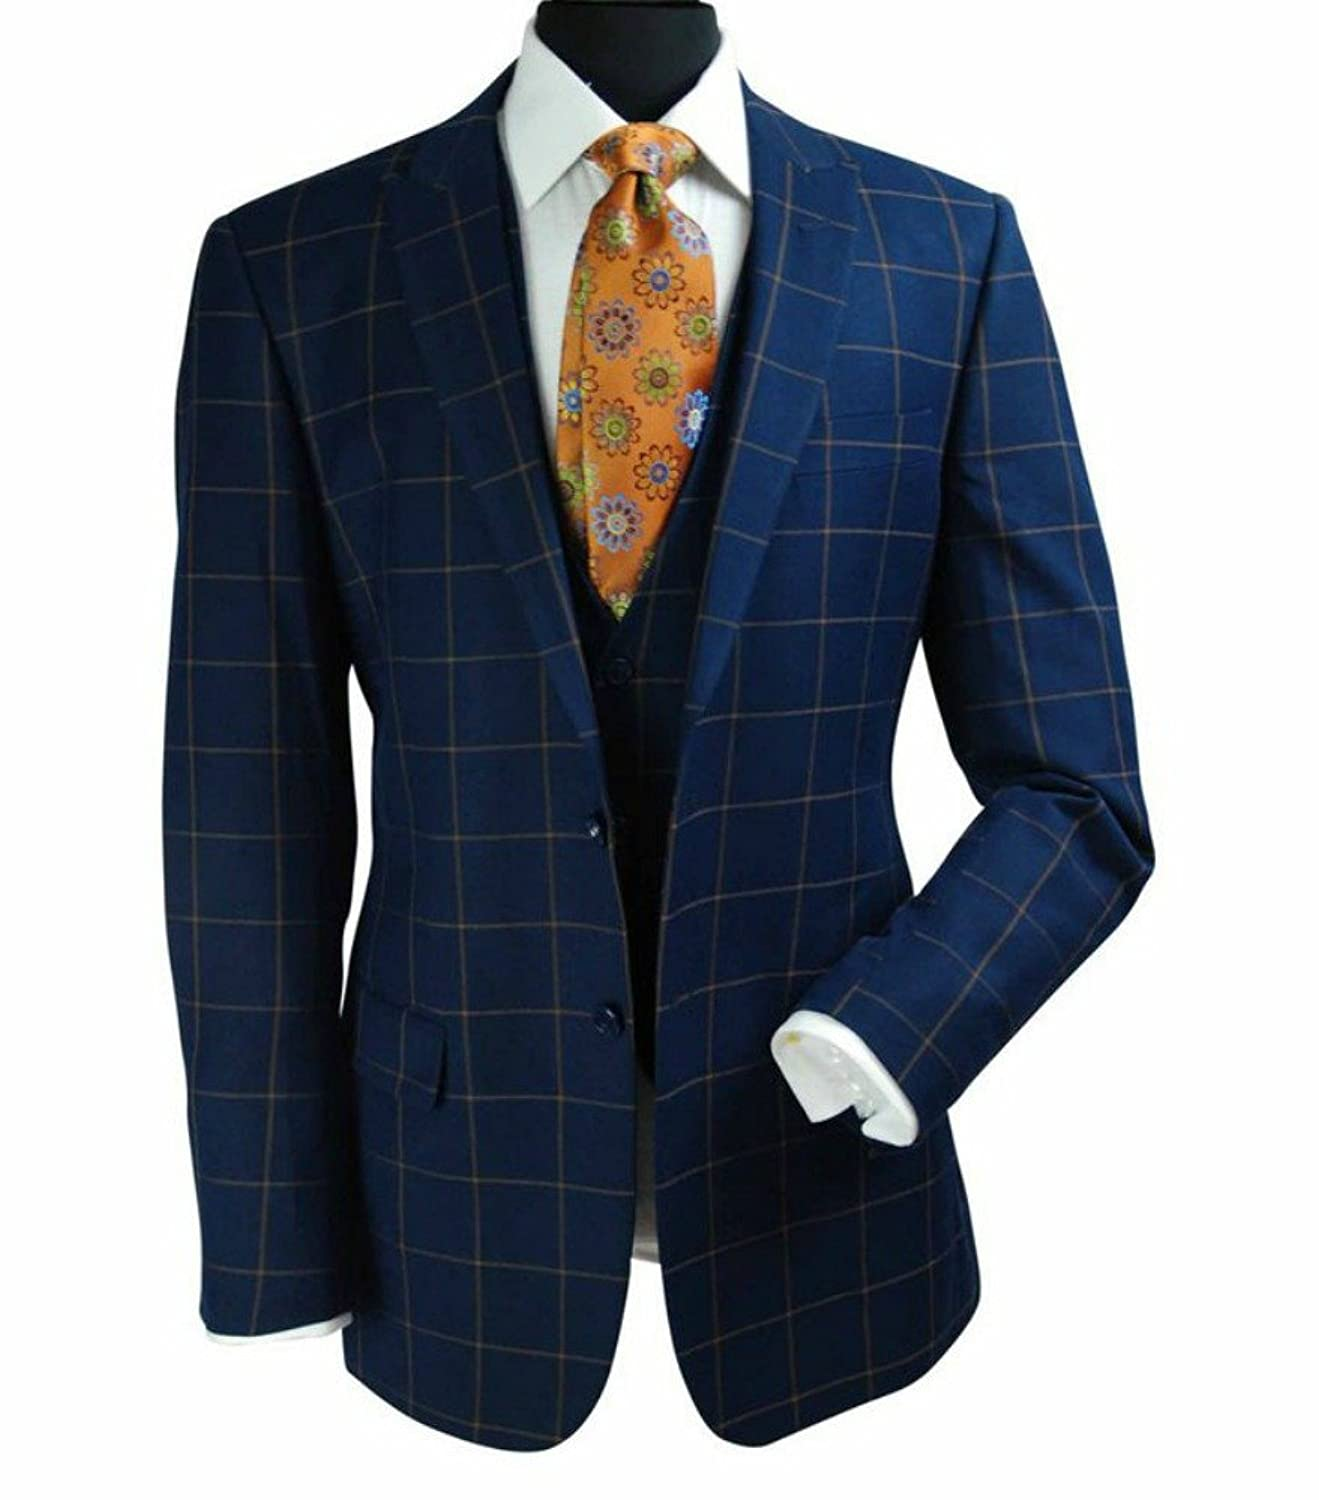 Men's Vintage Style Suits, Classic Suits Steven Land Mens Blue Windowpane Two Button Three Piece Suit With Peak Lapels $219.00 AT vintagedancer.com